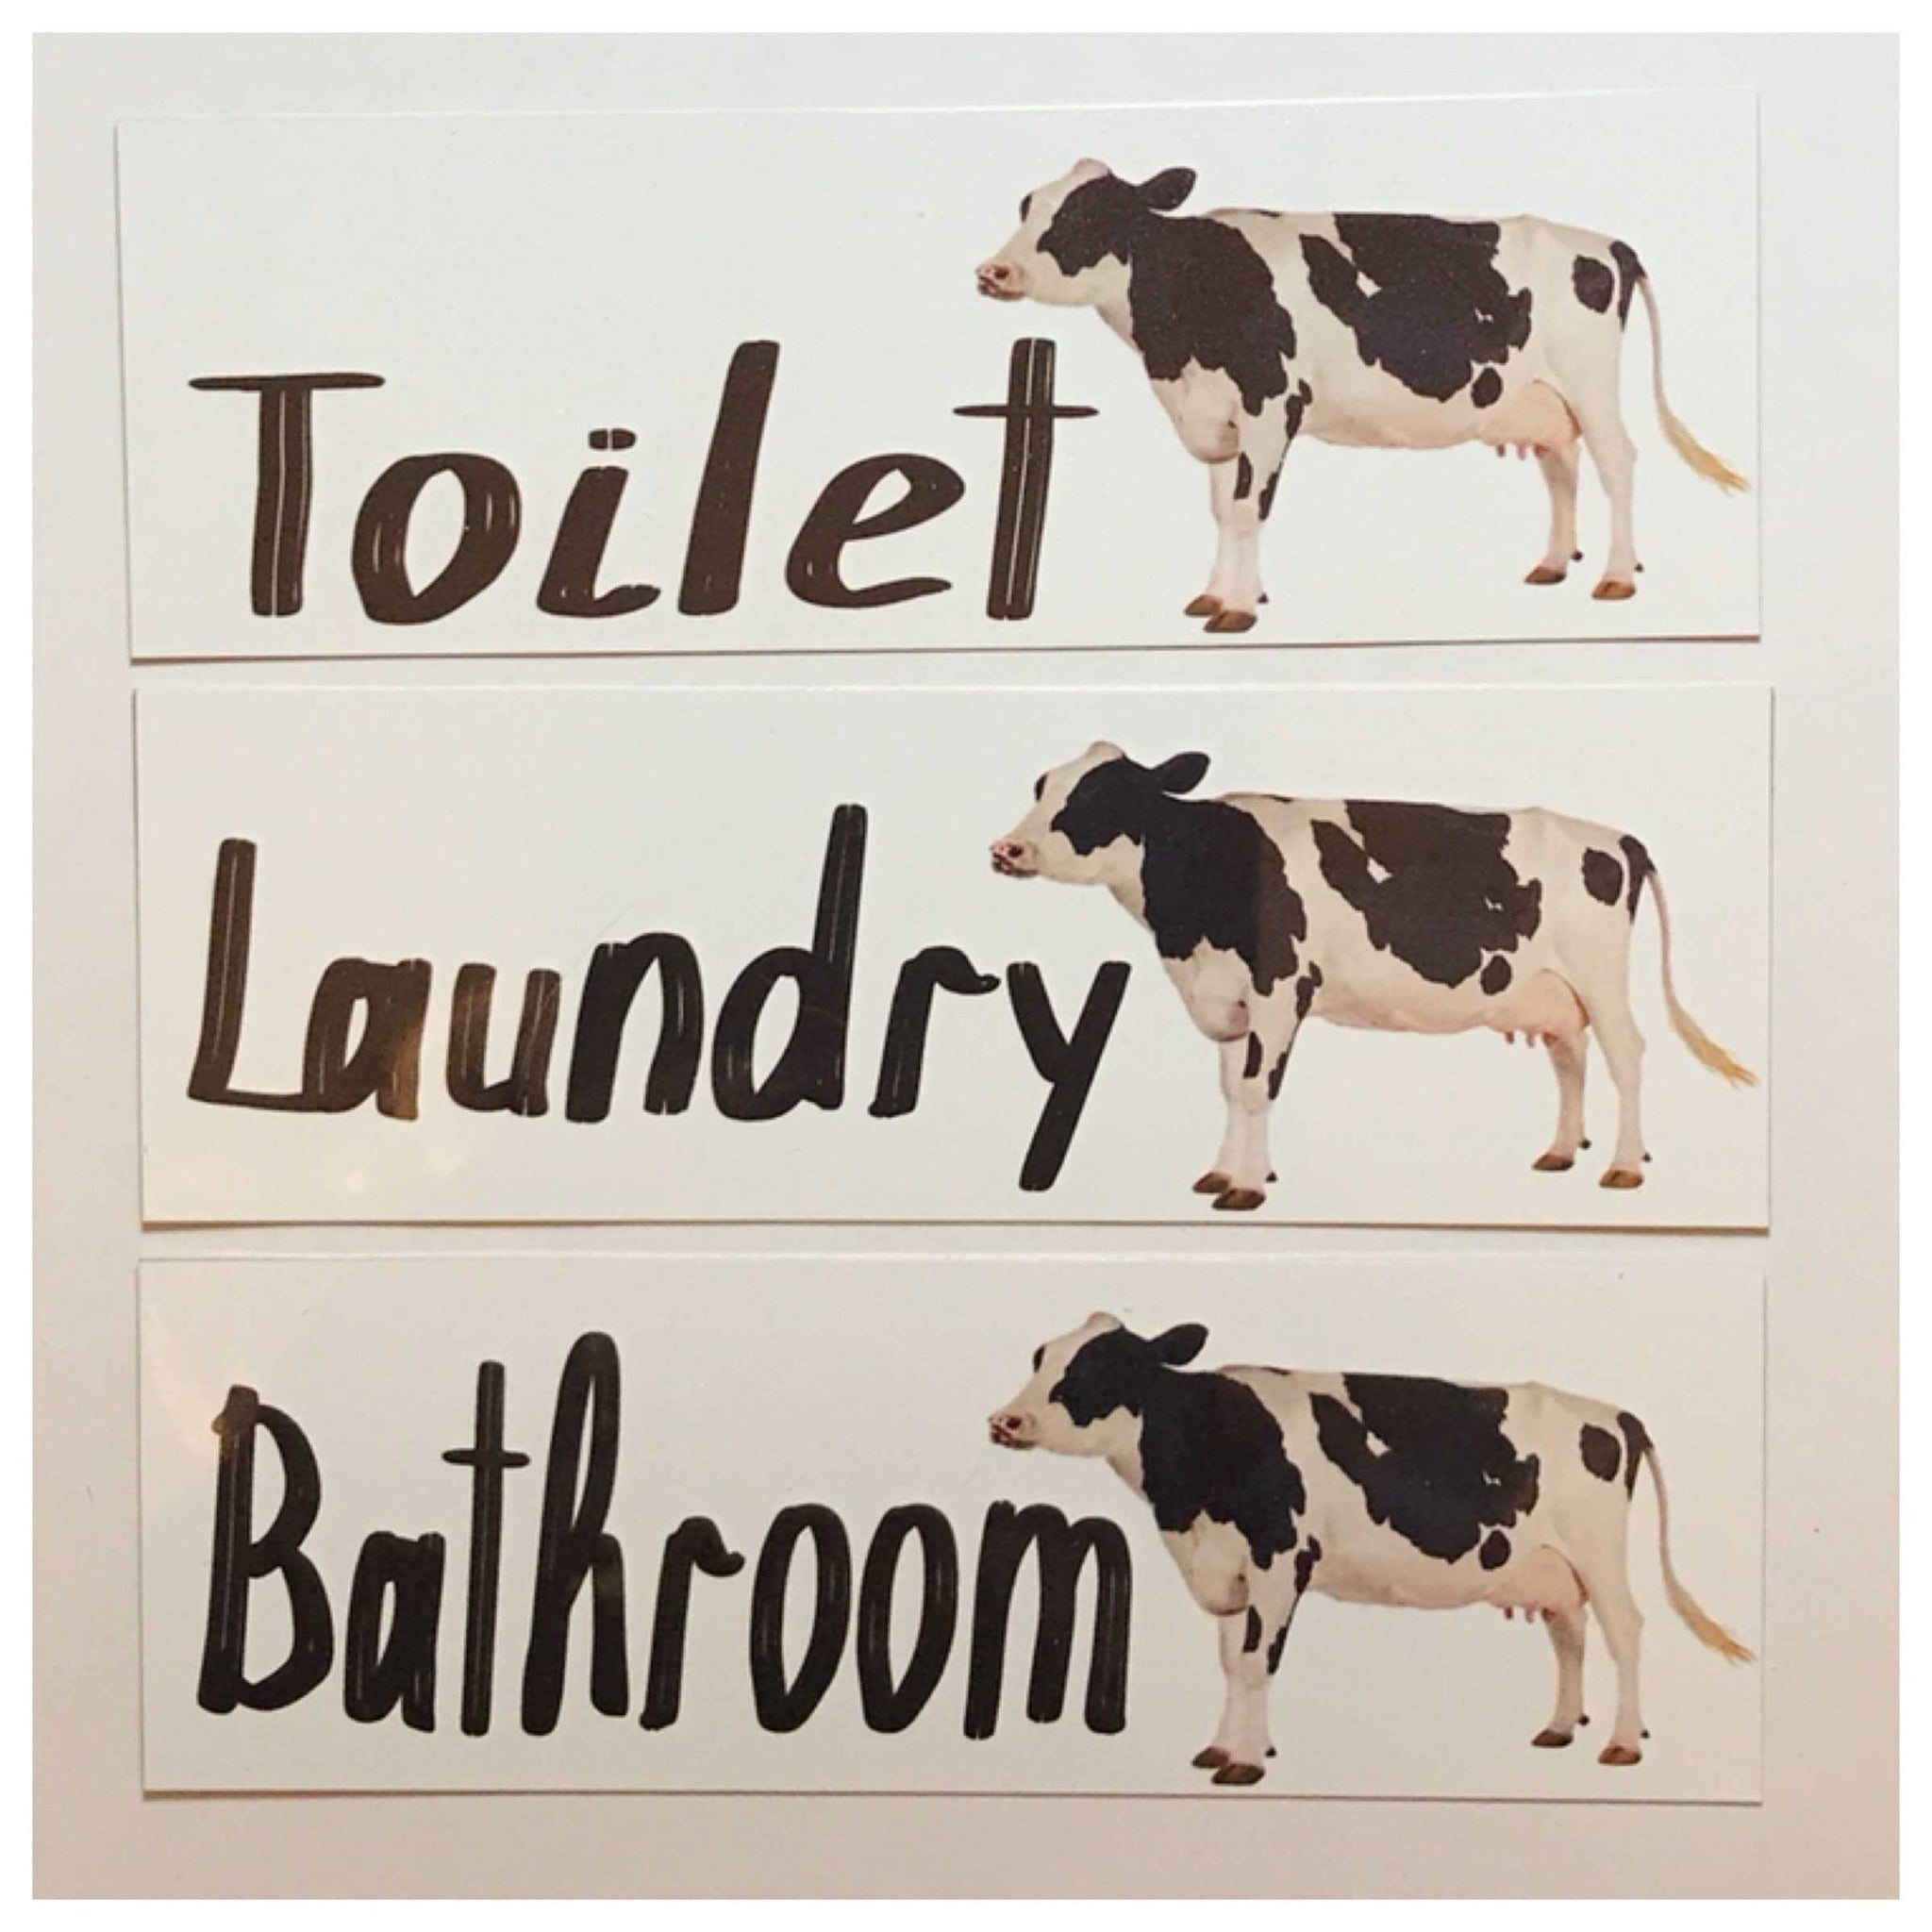 Cow Toilet Laundry Bathroom Sign - The Renmy Store